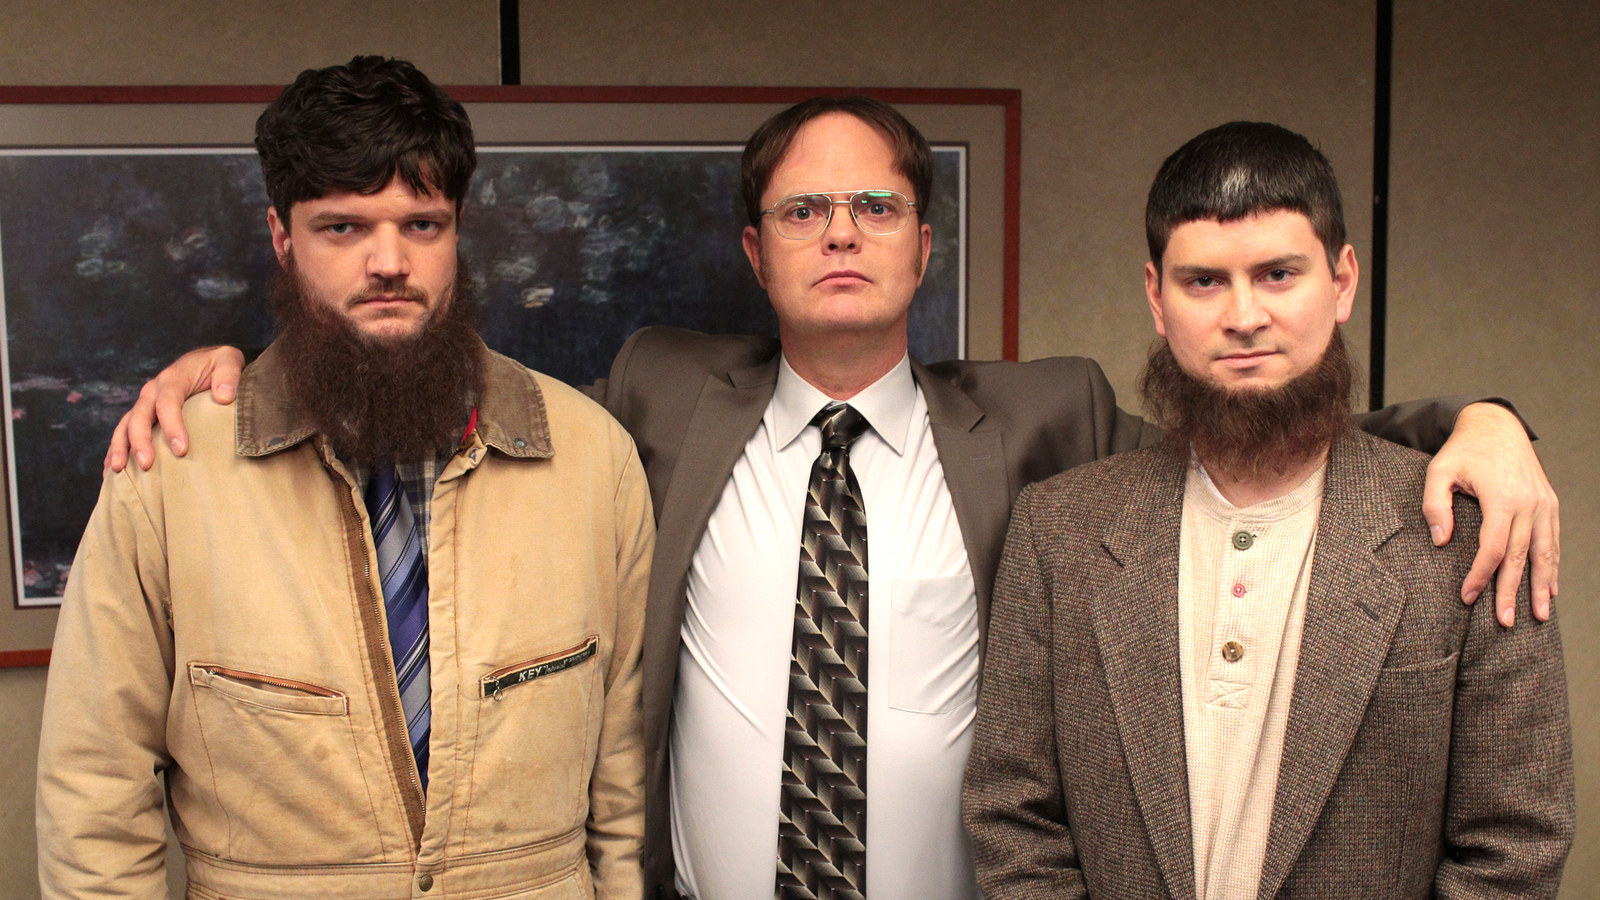 First, Dwight and Mose from  The Office  almost got their own spinoff called The Farm  . The show would've followed the Schrutes running a bed and breakfast at their beet farm.